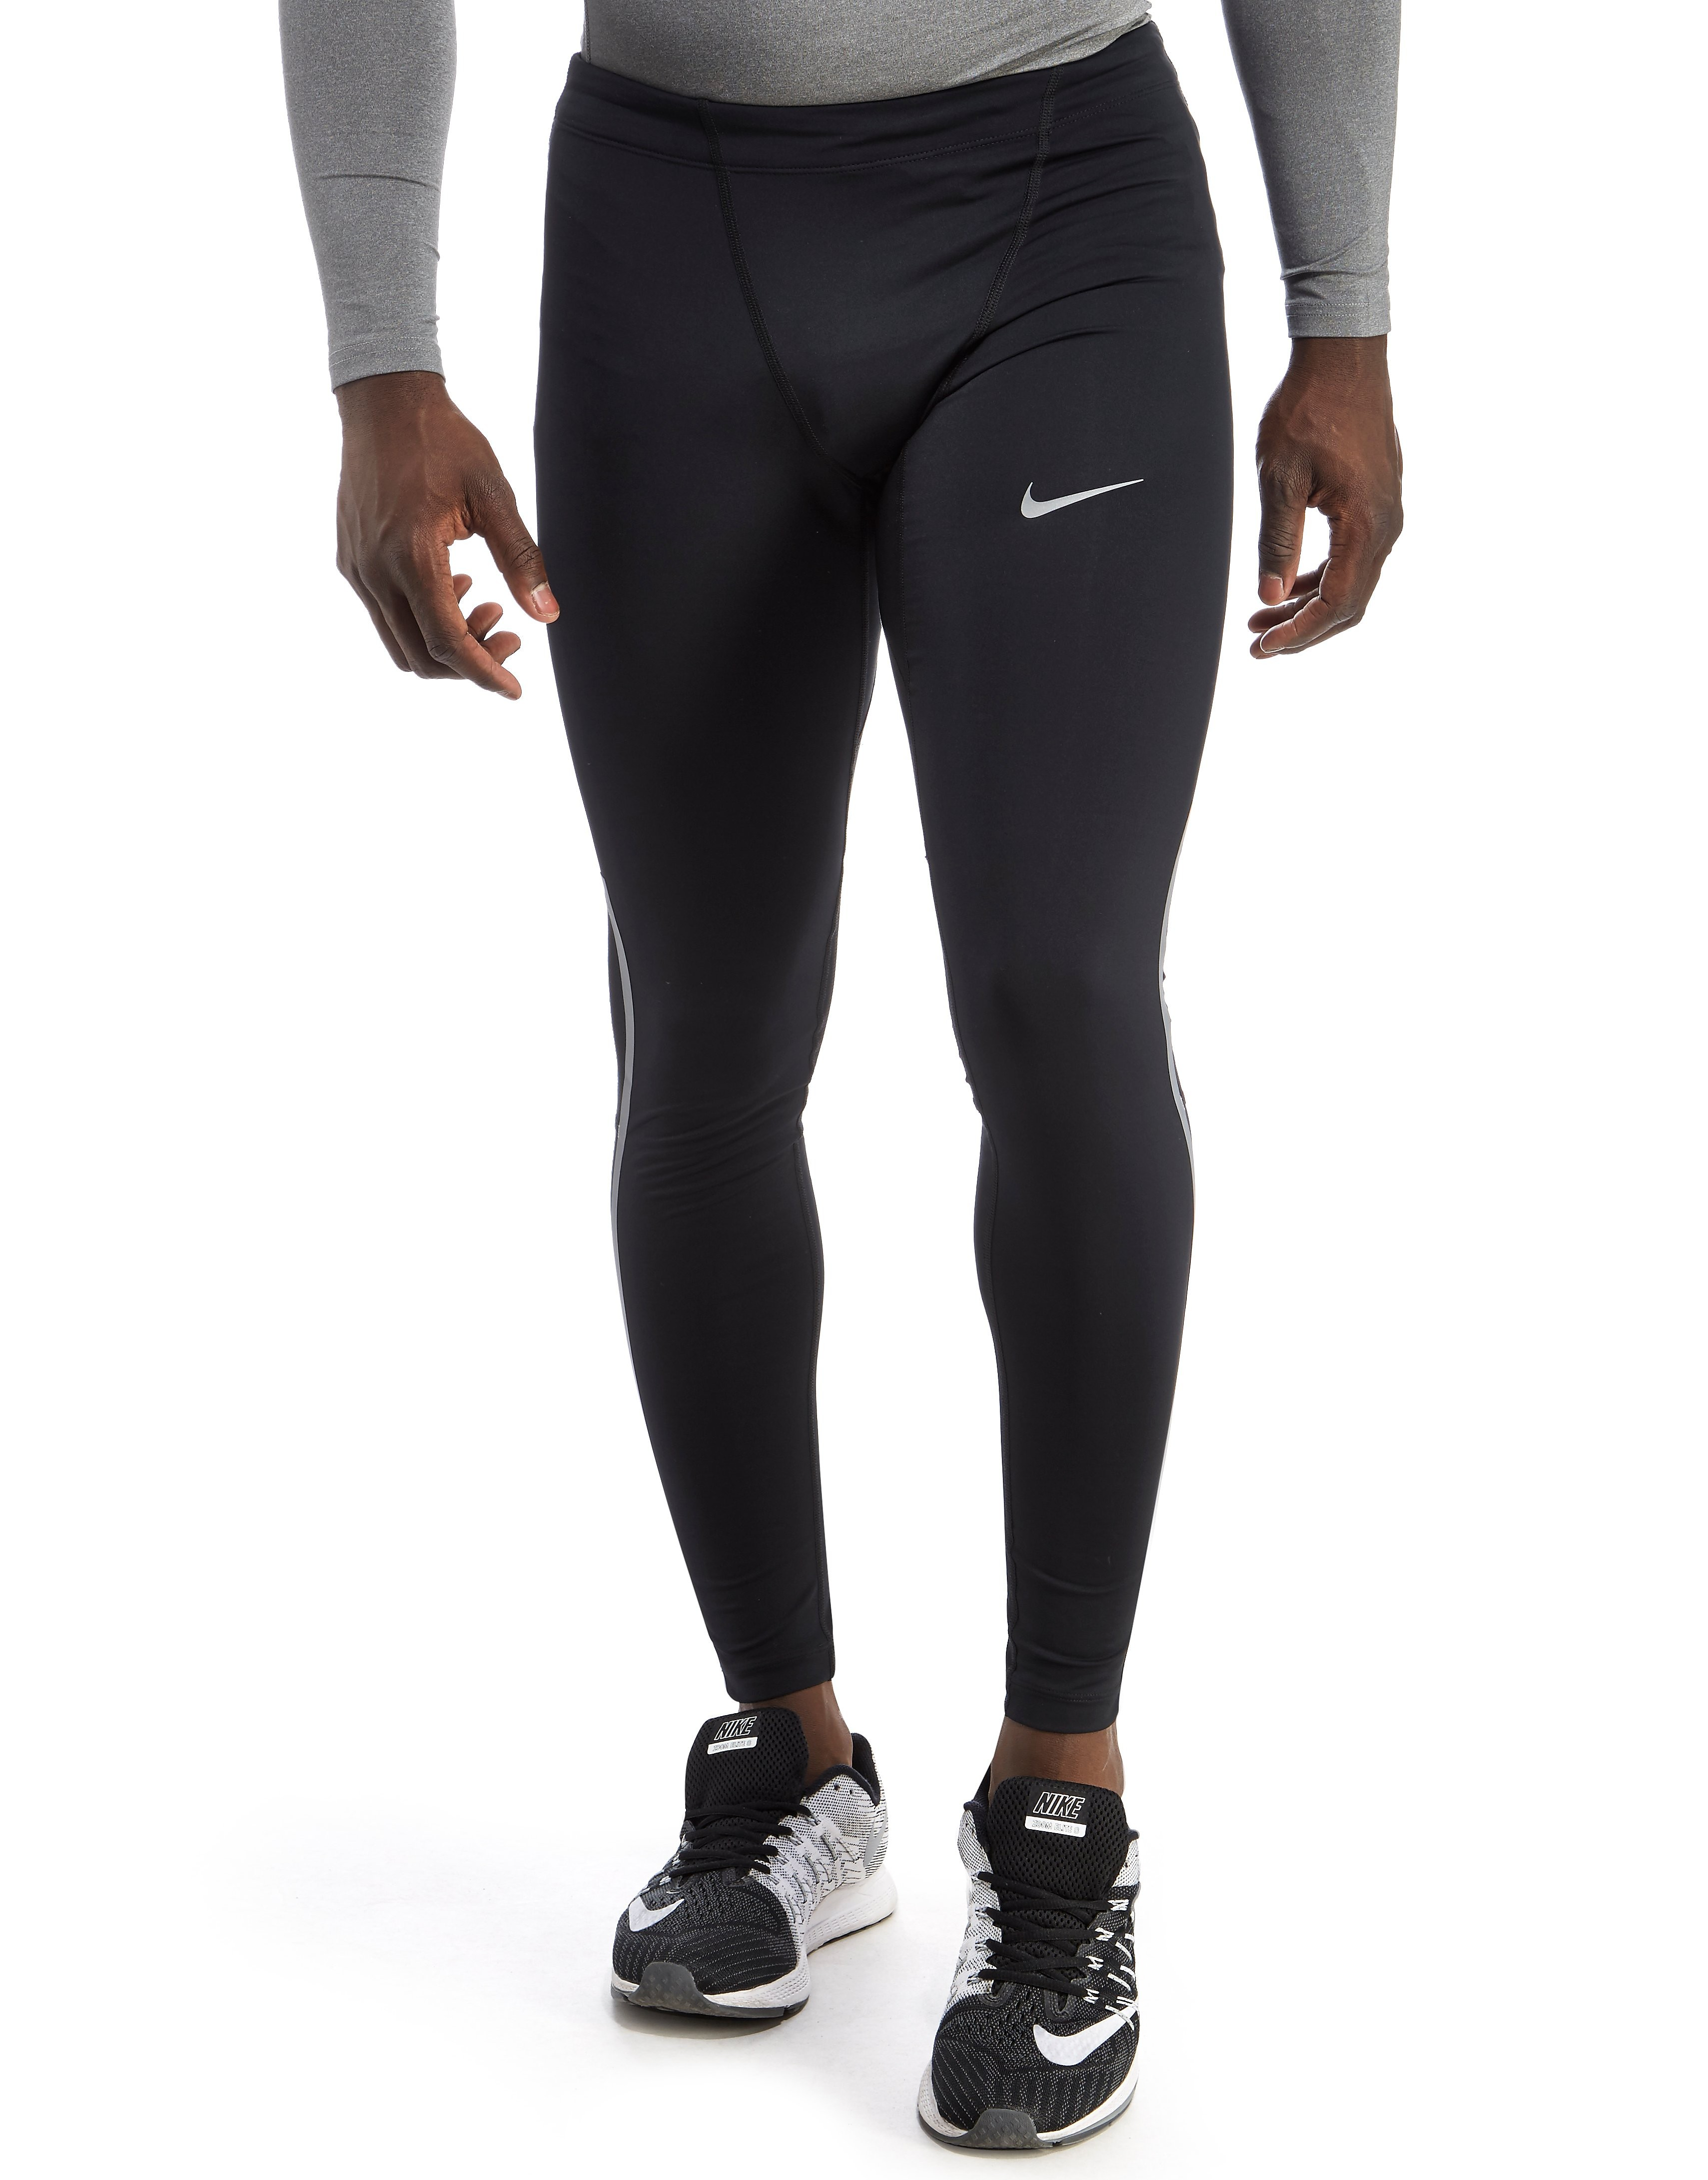 Nike Reflective Tech Tights